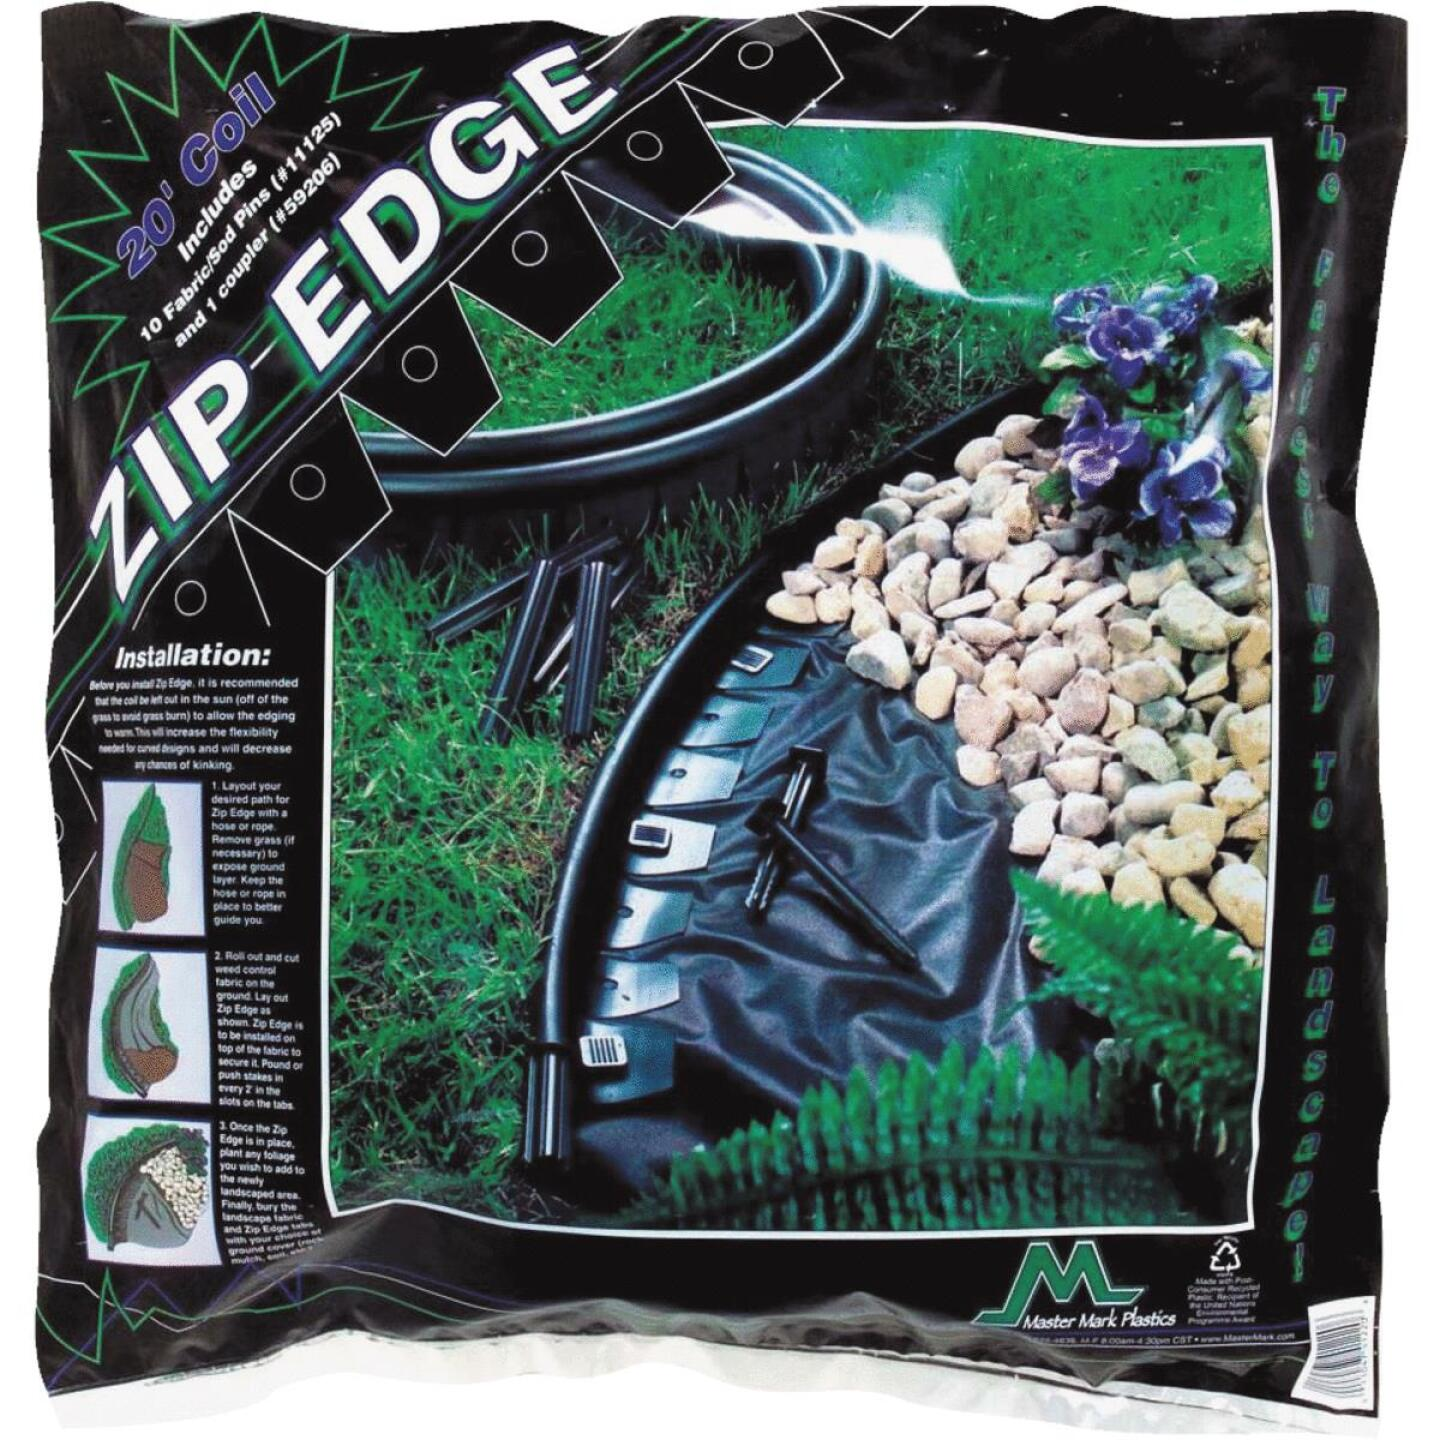 Master Mark Zip Edge 1 In. H. x 20 Ft. L. Black Recycled Plastic Lawn Edging Image 1